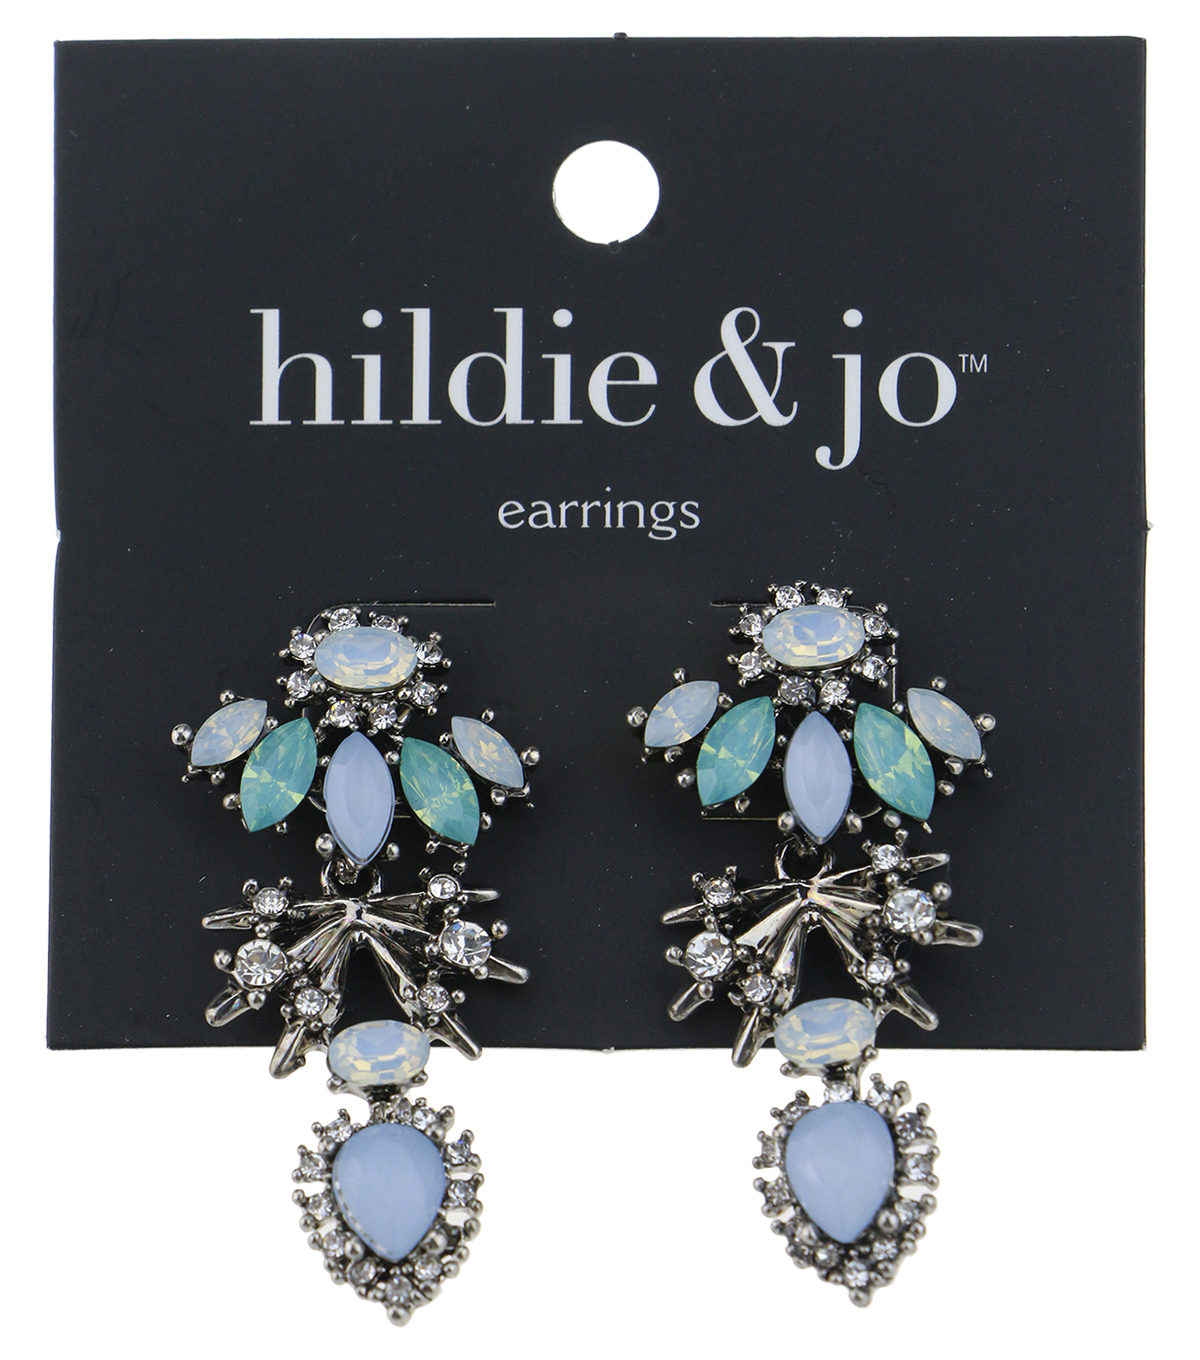 hildie & jo Silver Earrings-Green, Blue & Clear Crystals